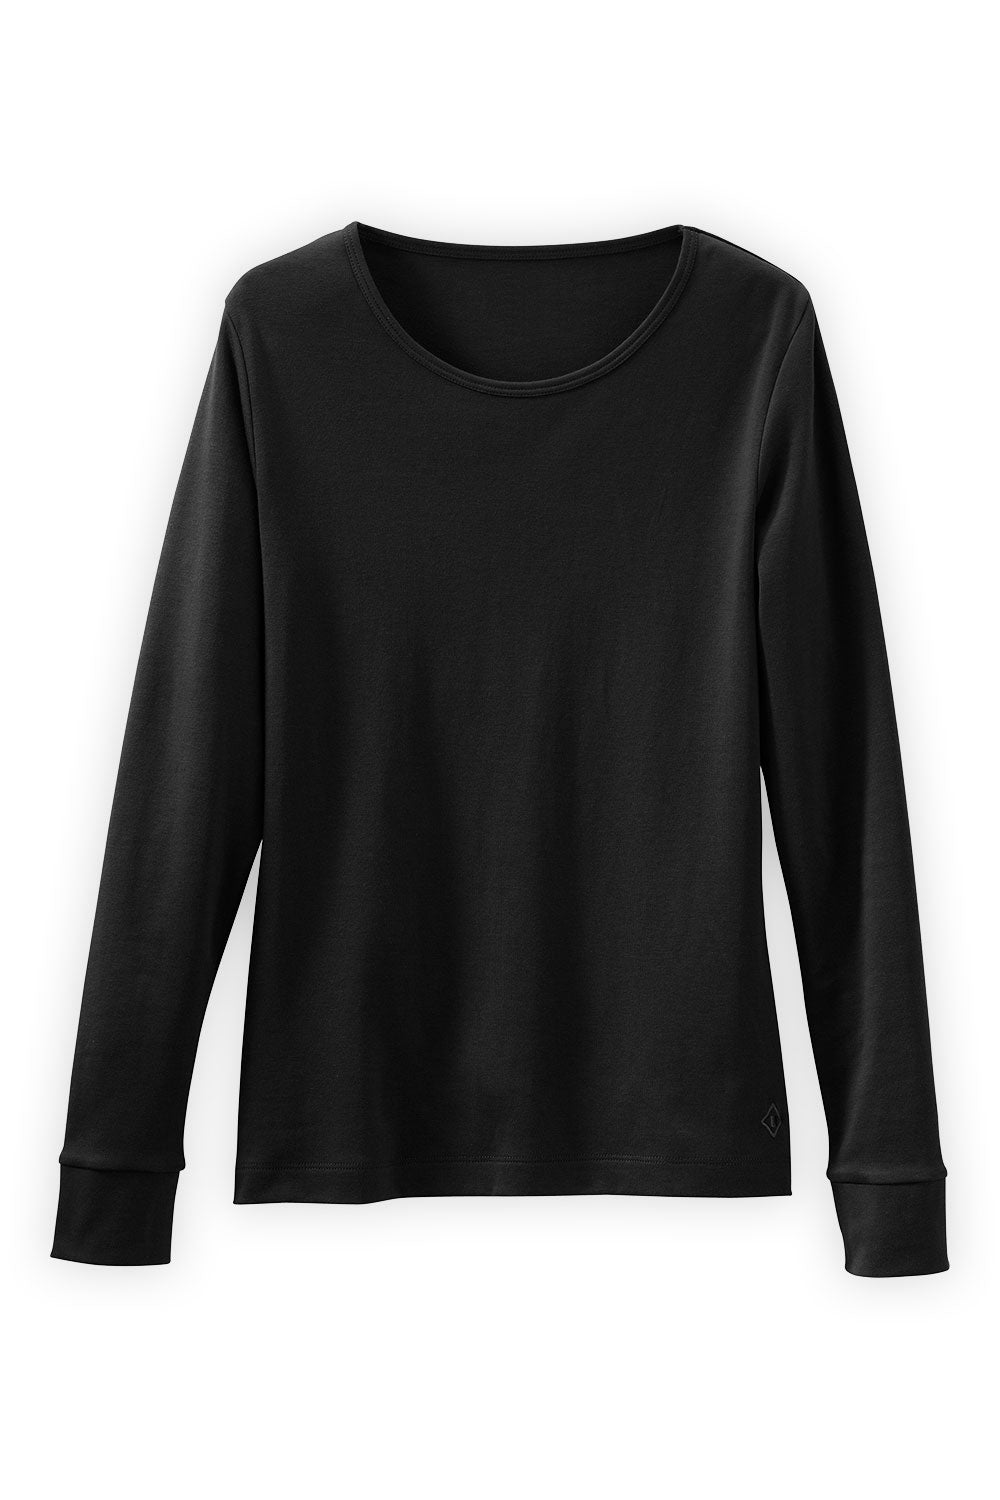 fair-indigo-womens-fair-trade-organic-long-sleeve-interlock-tee